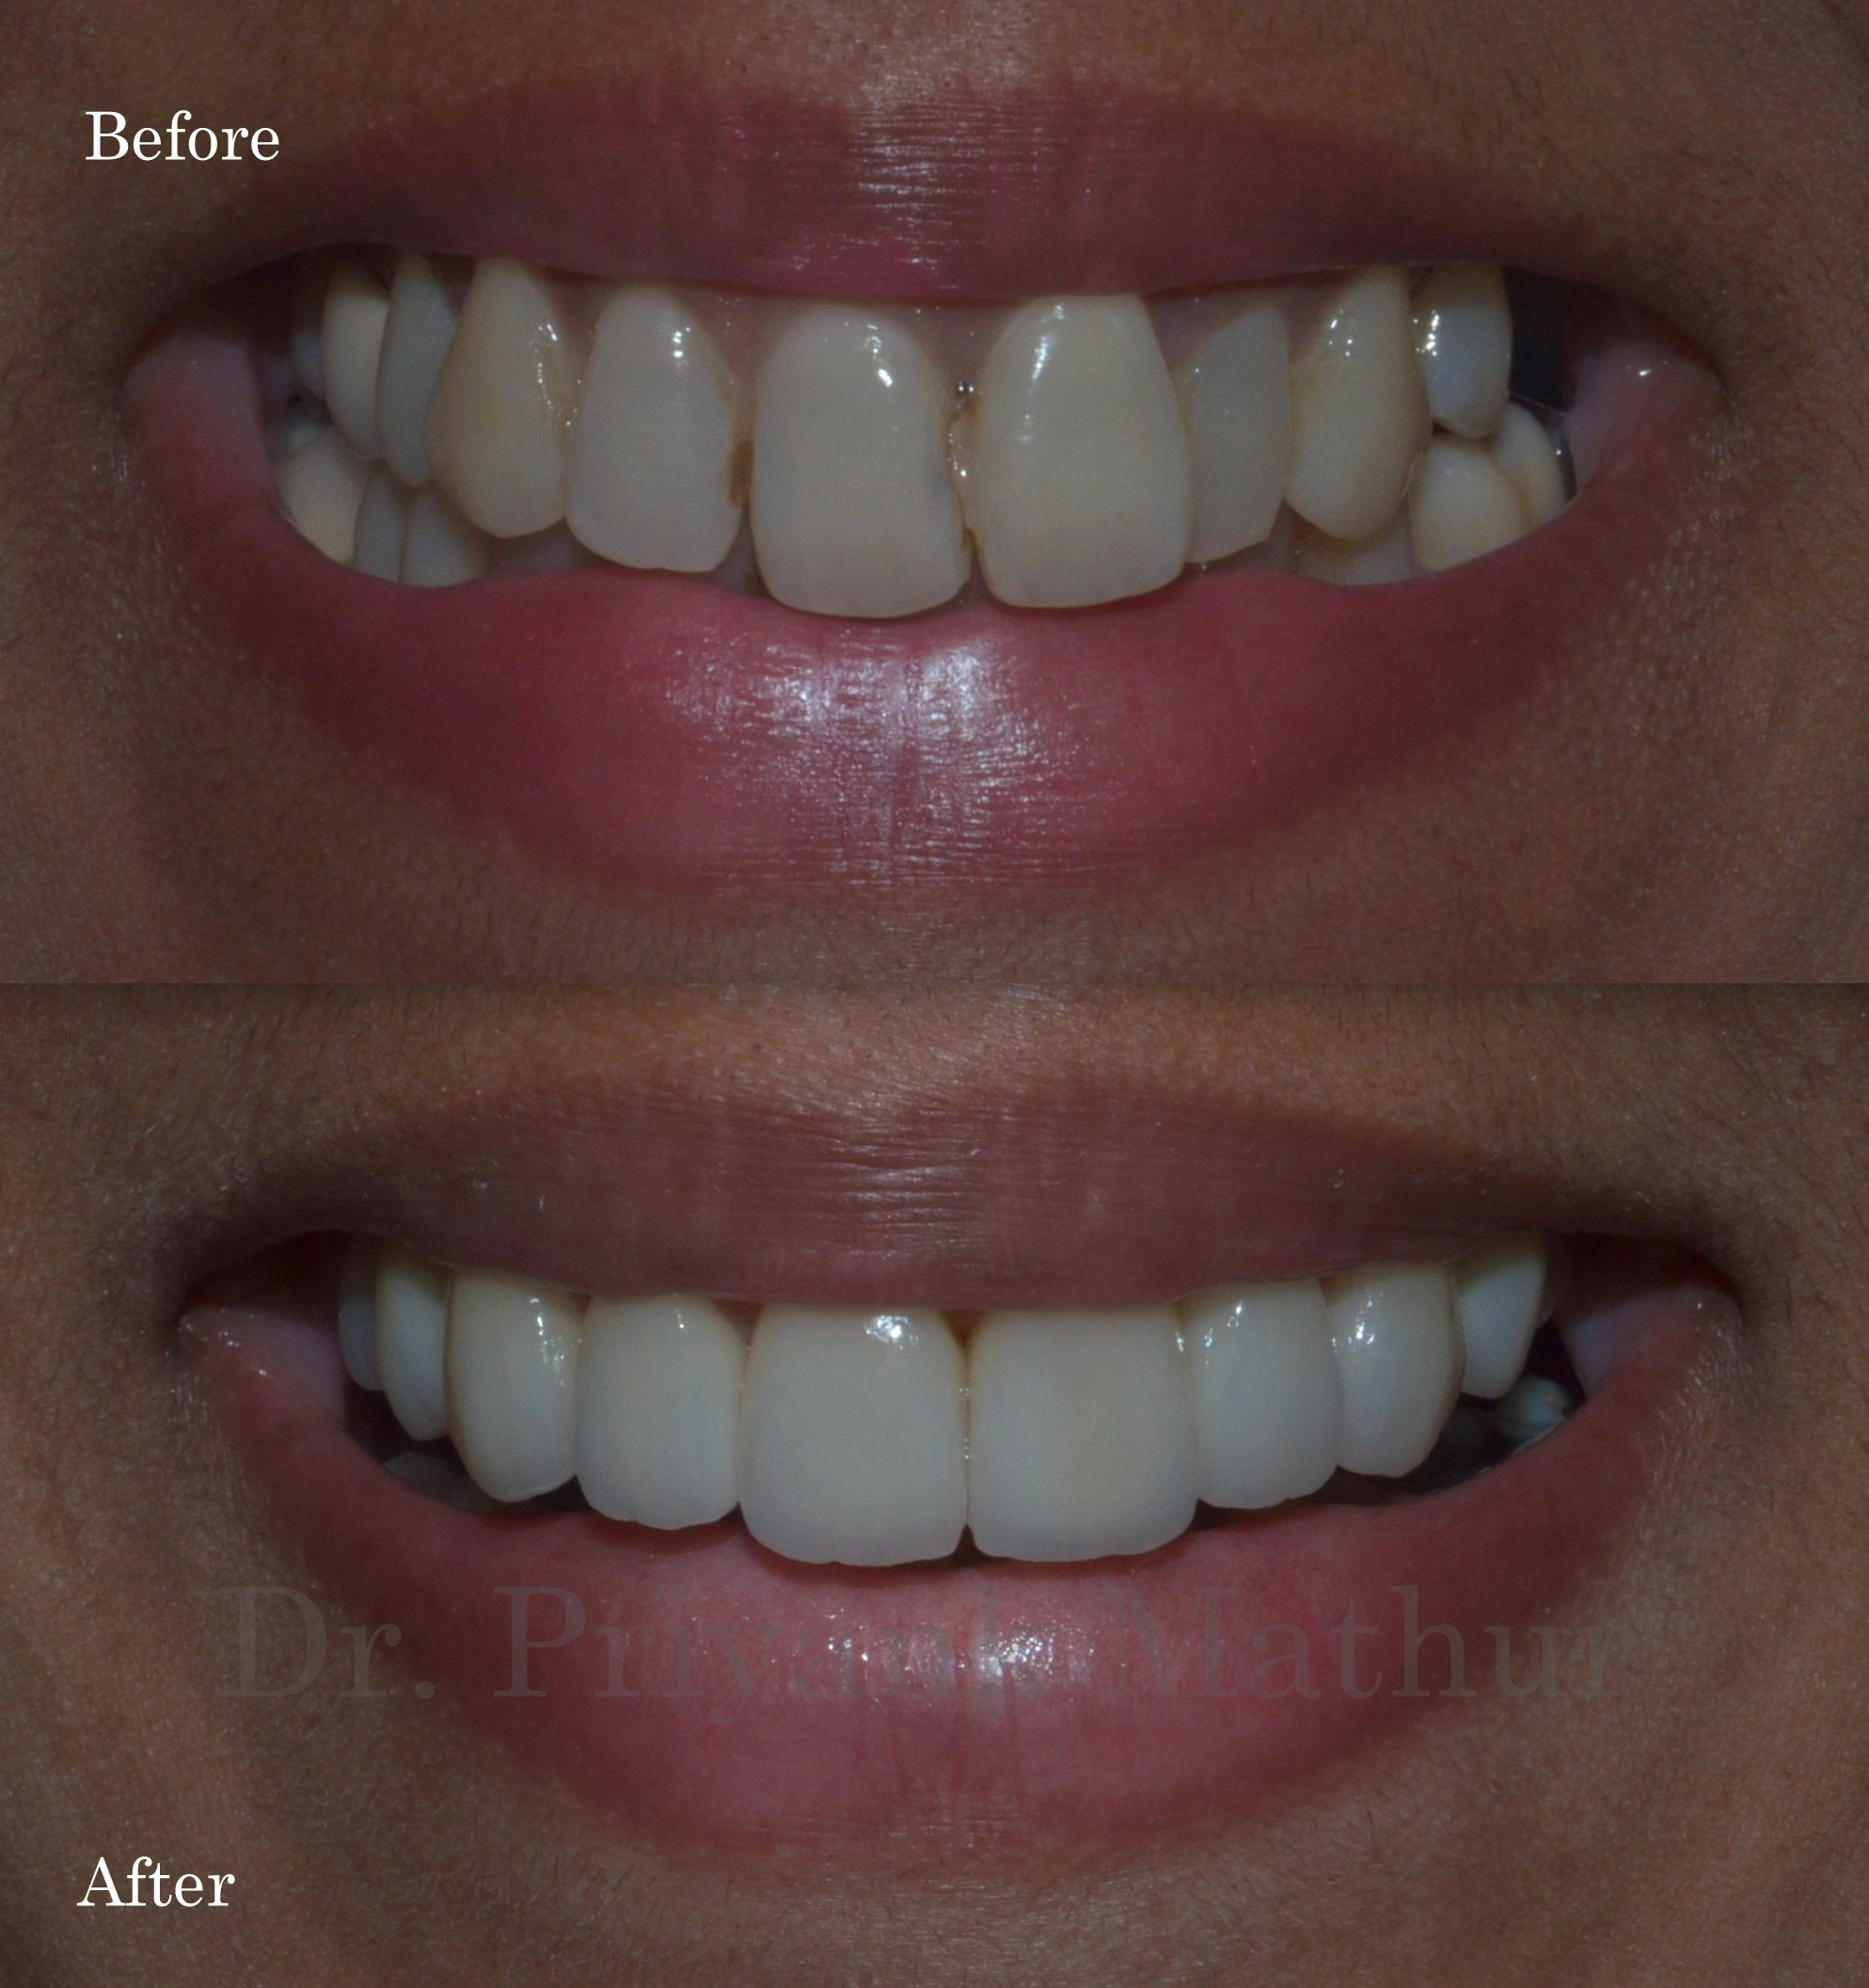 Porcelain veneers to align and brighten teeth